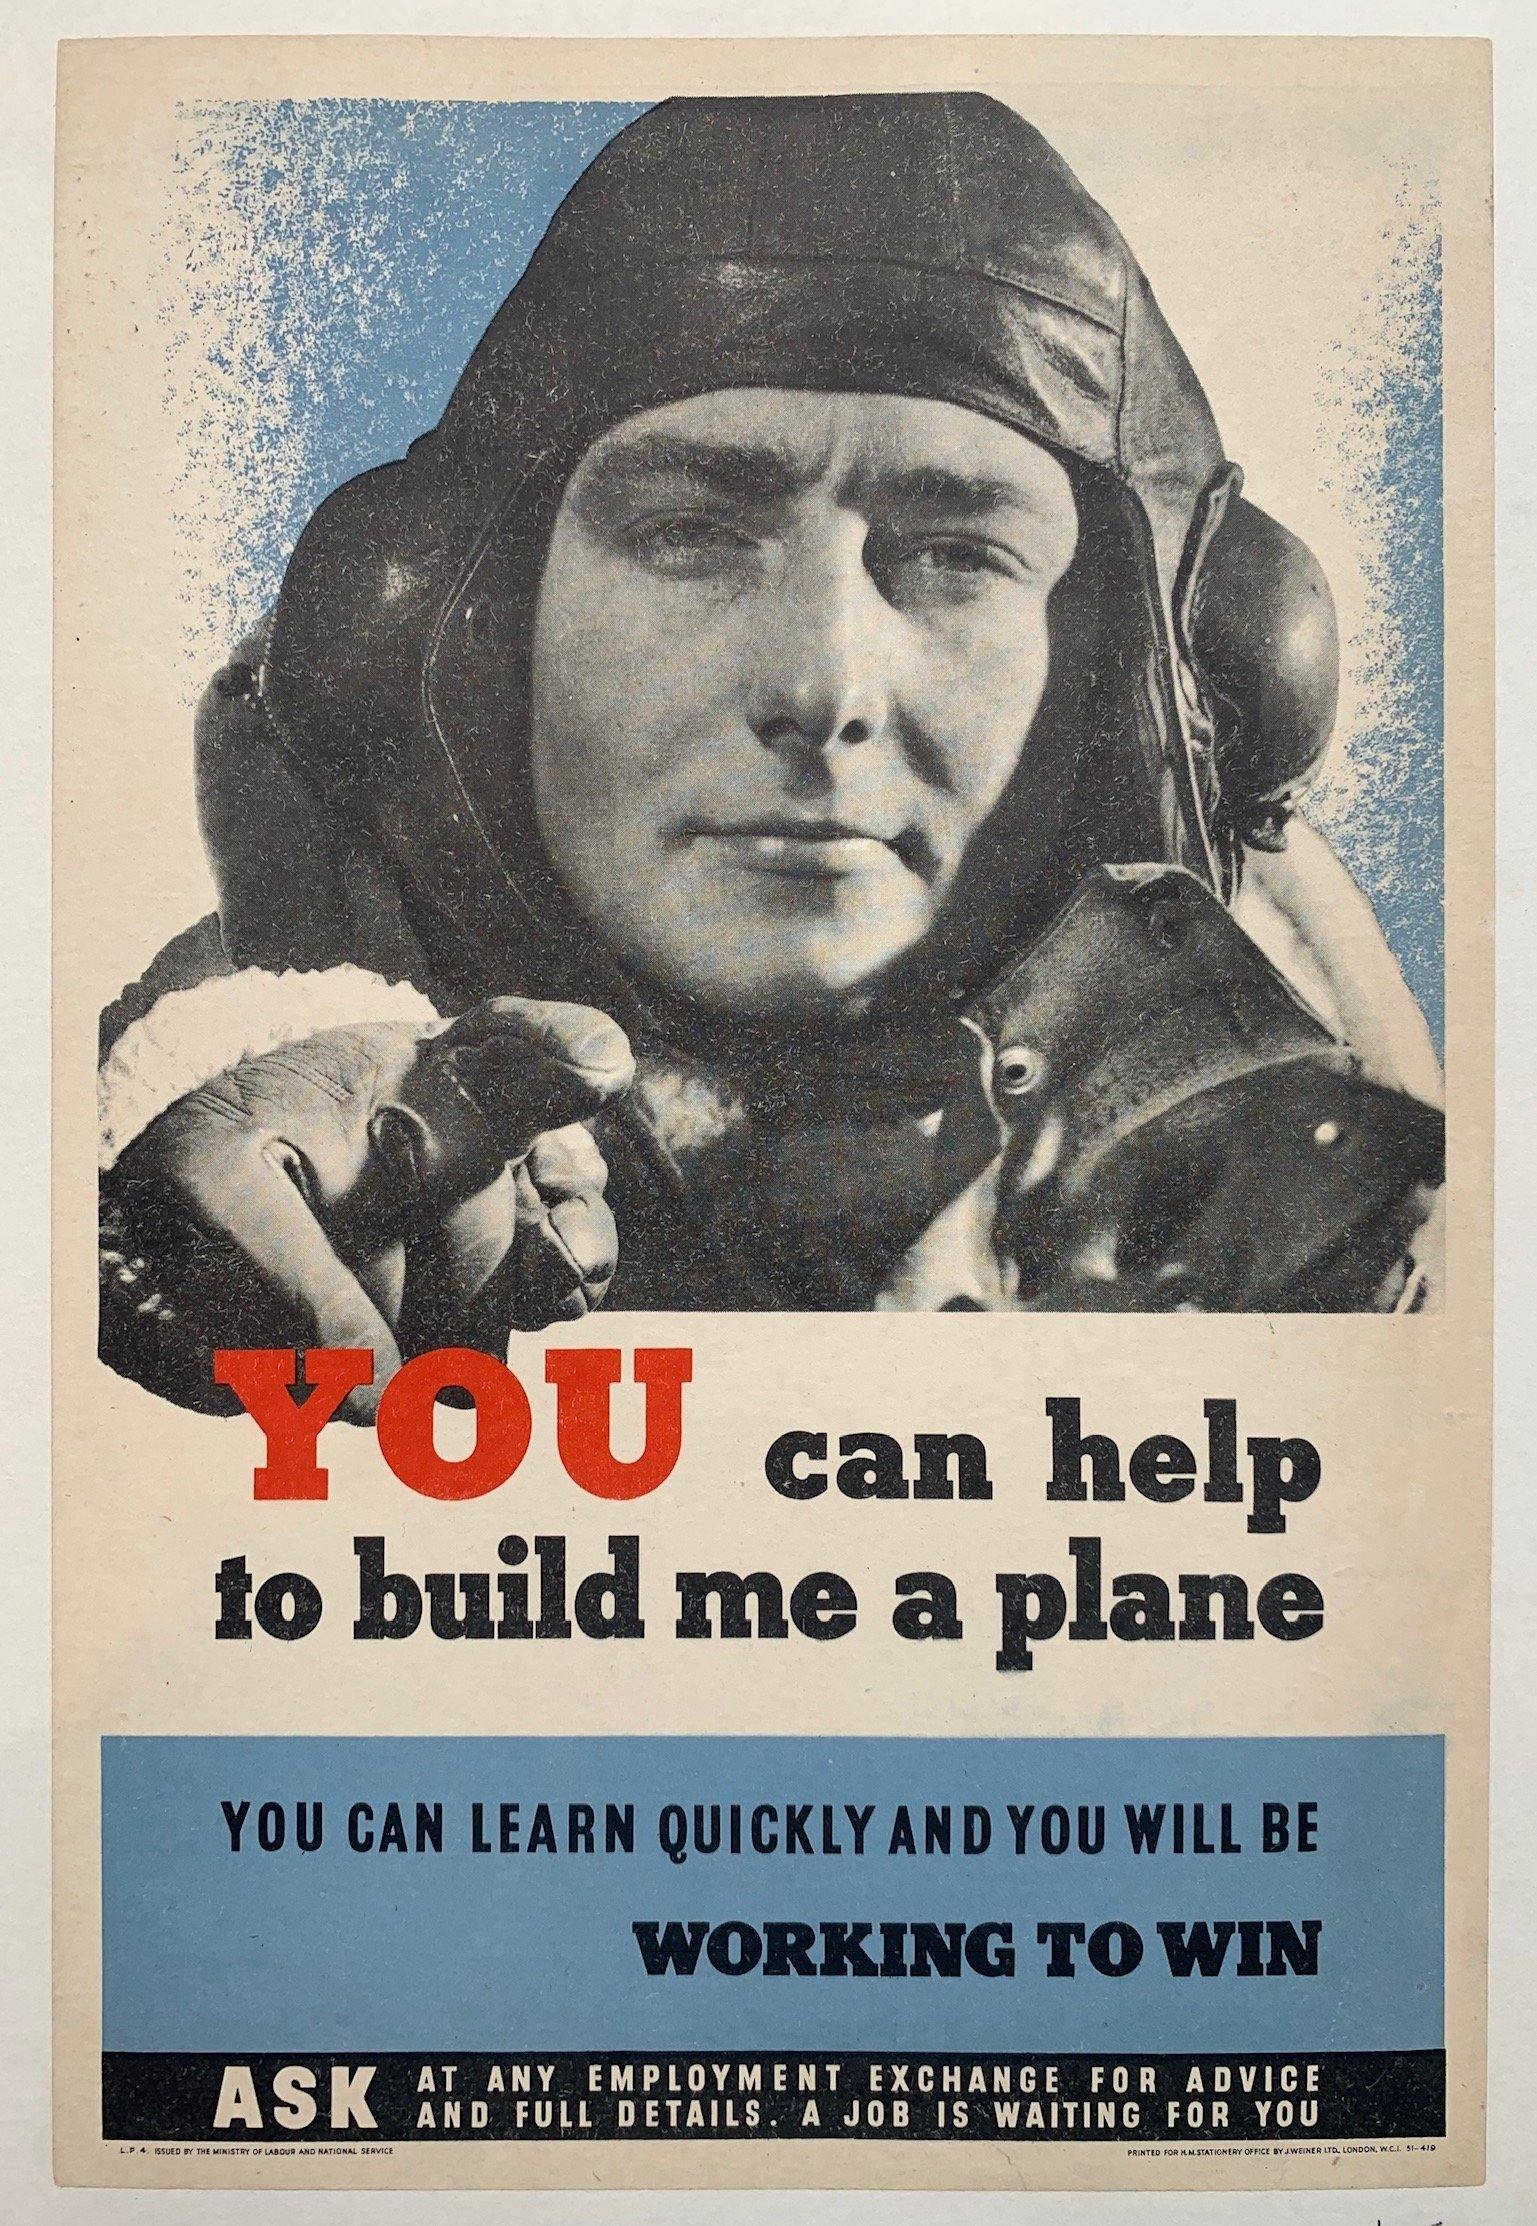 YOU can help to build me a plane. You can learn quickly and you will be working to win. - Poster Museum